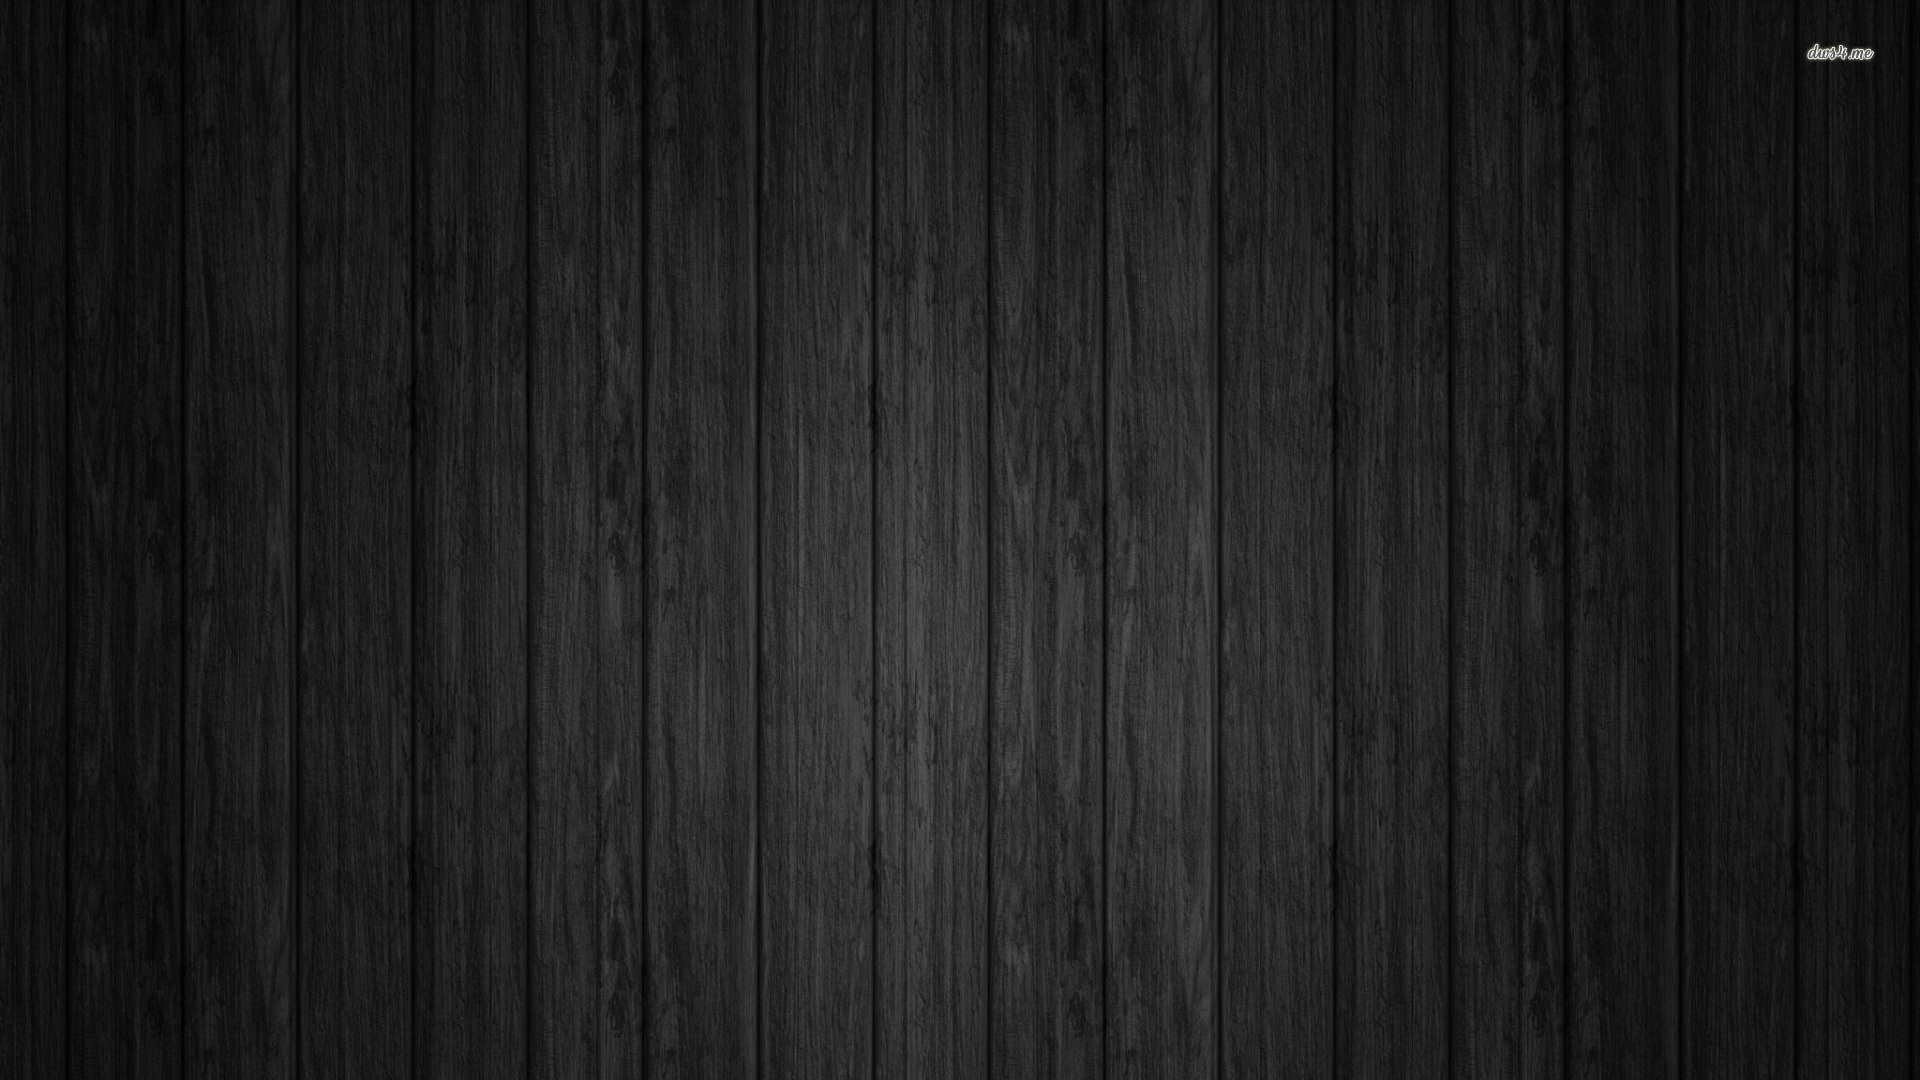 texture black wallpaper abstract wooden textured wallpapers Black 1920x1080